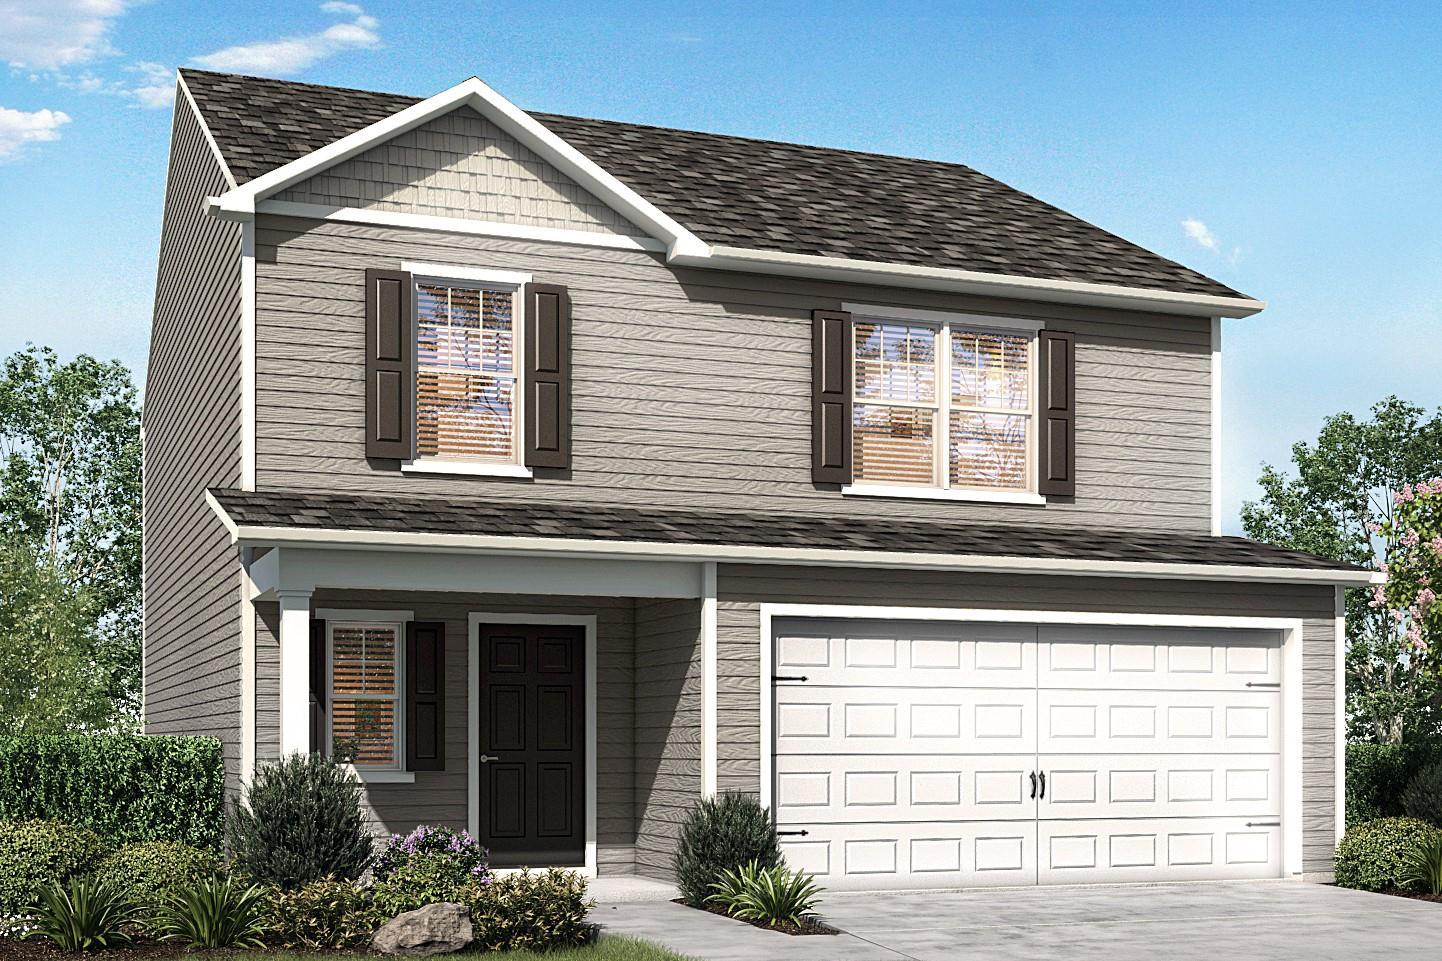 LGI Homes at Anneewakee Trails:The Camden by LGI Homes